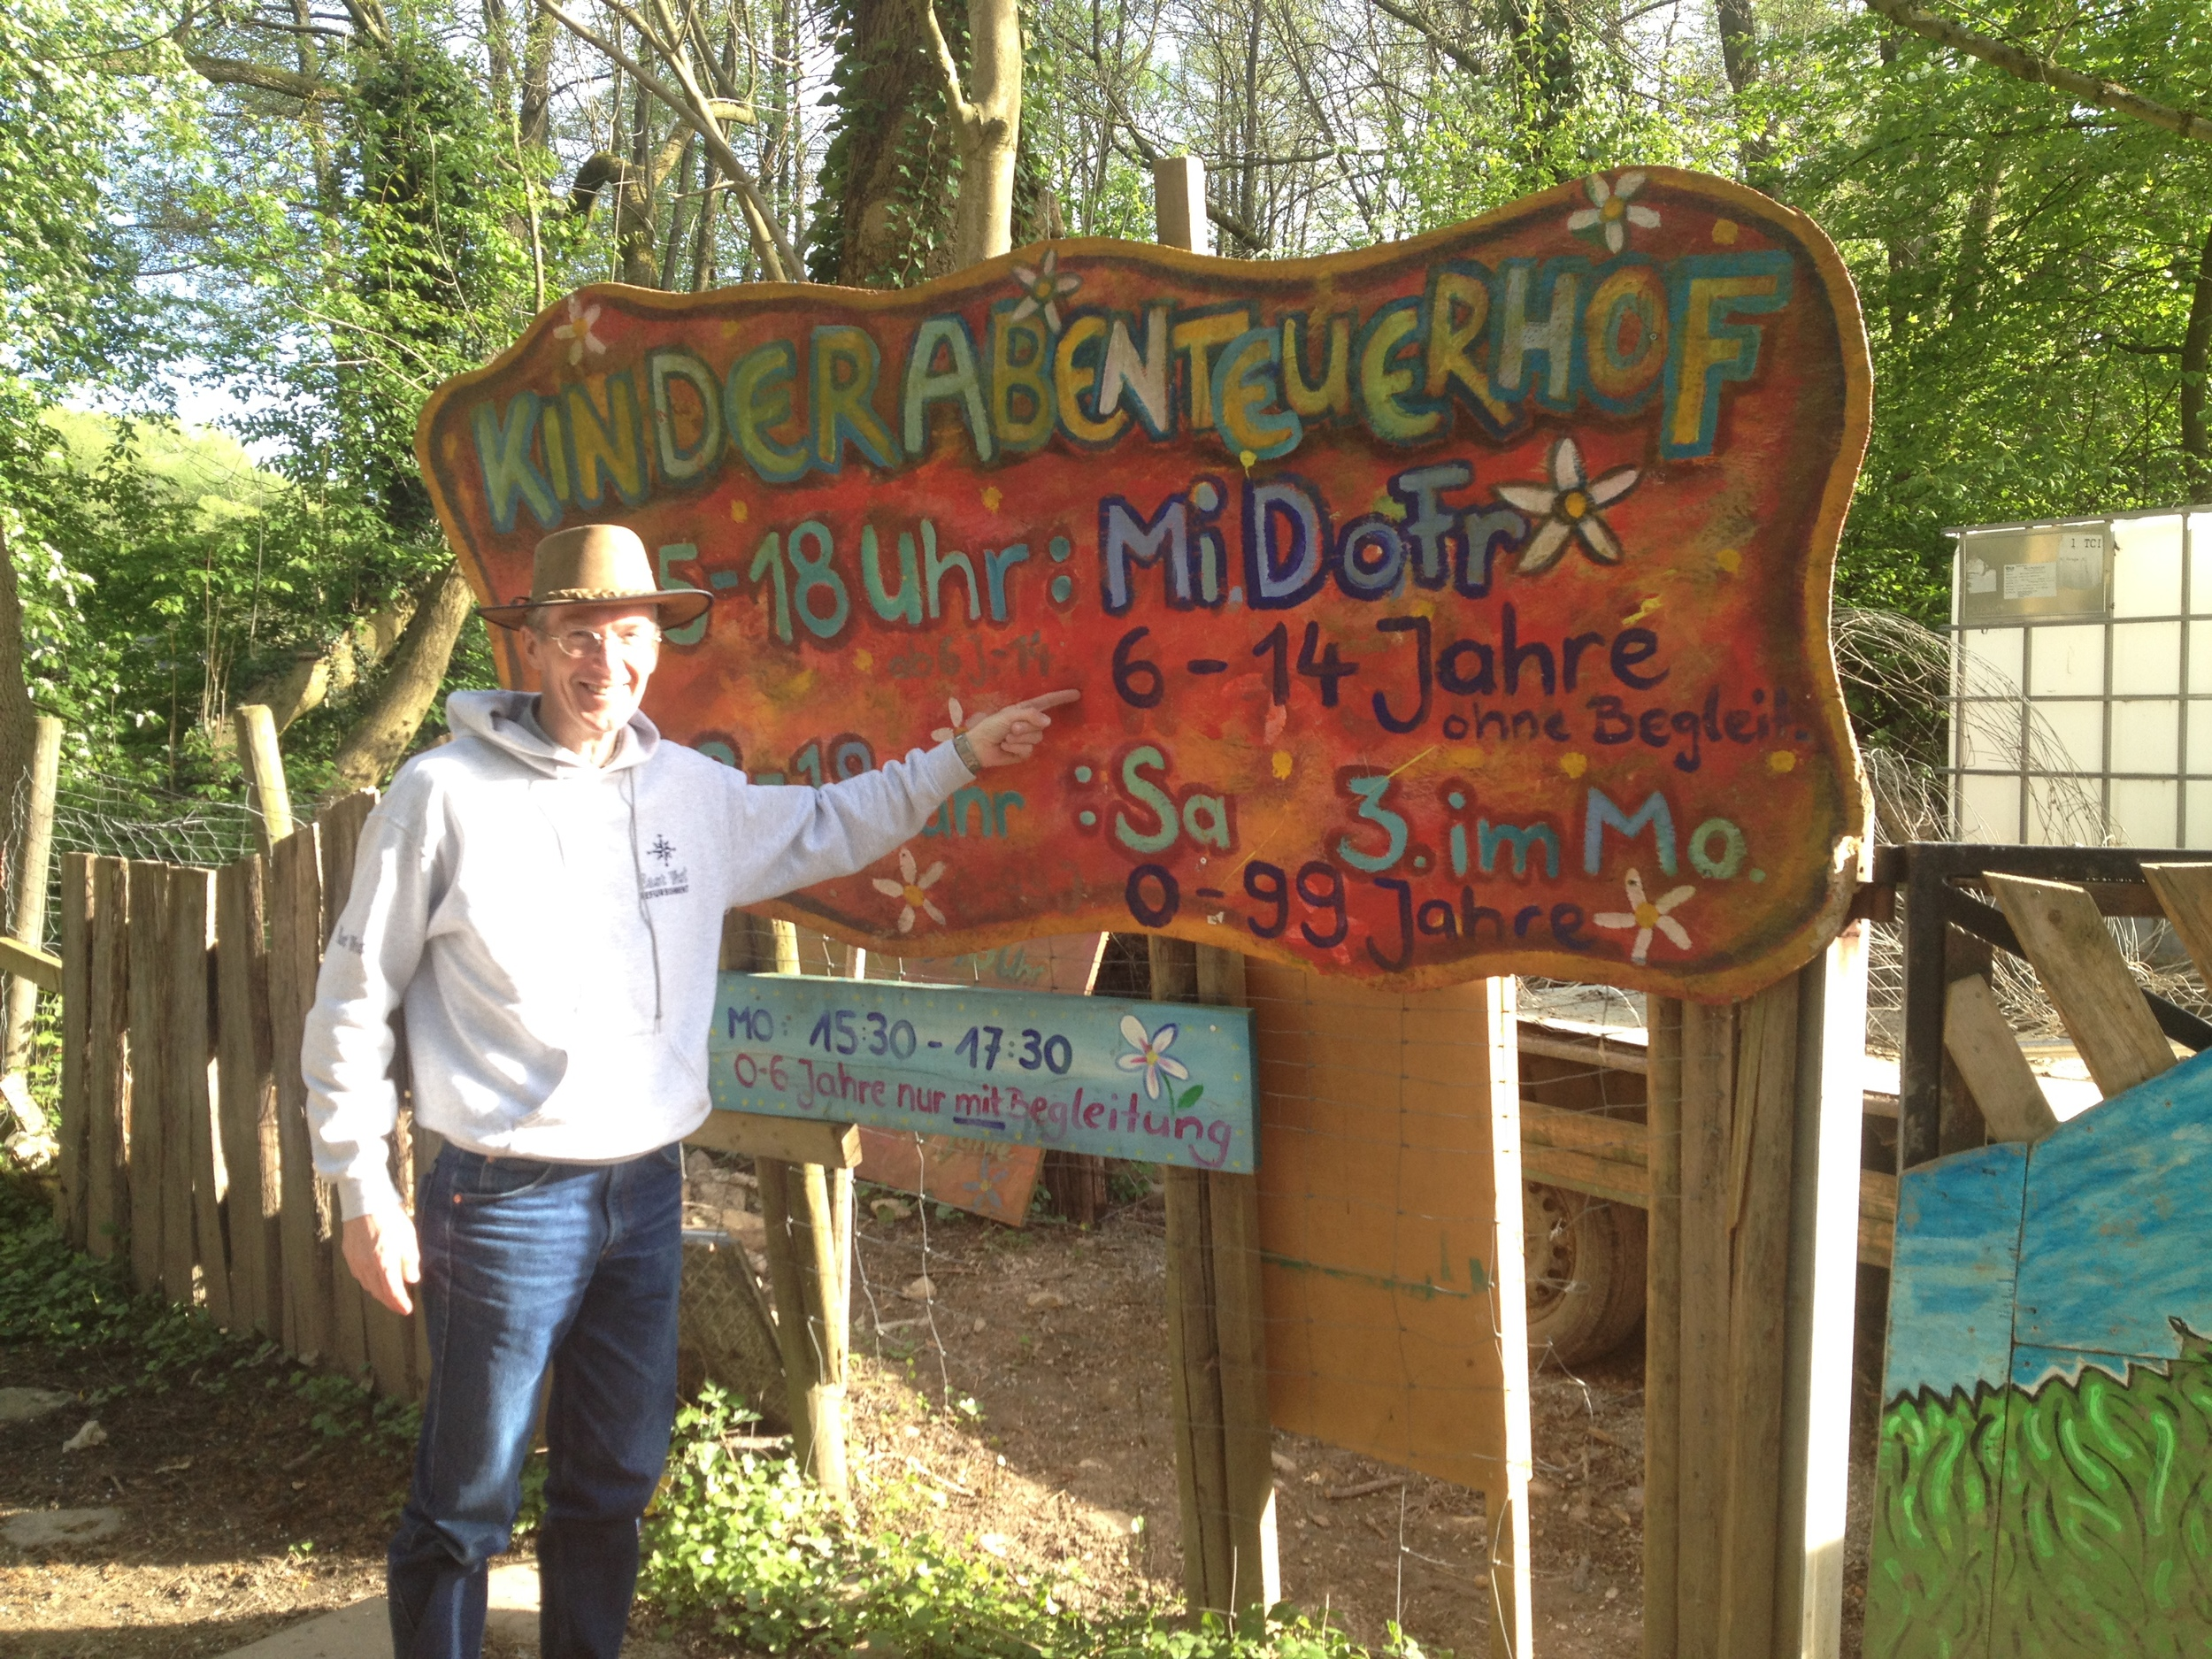 Peter points out the sign marking the entrance to Kinderabenteuerhof park in Freiburg.